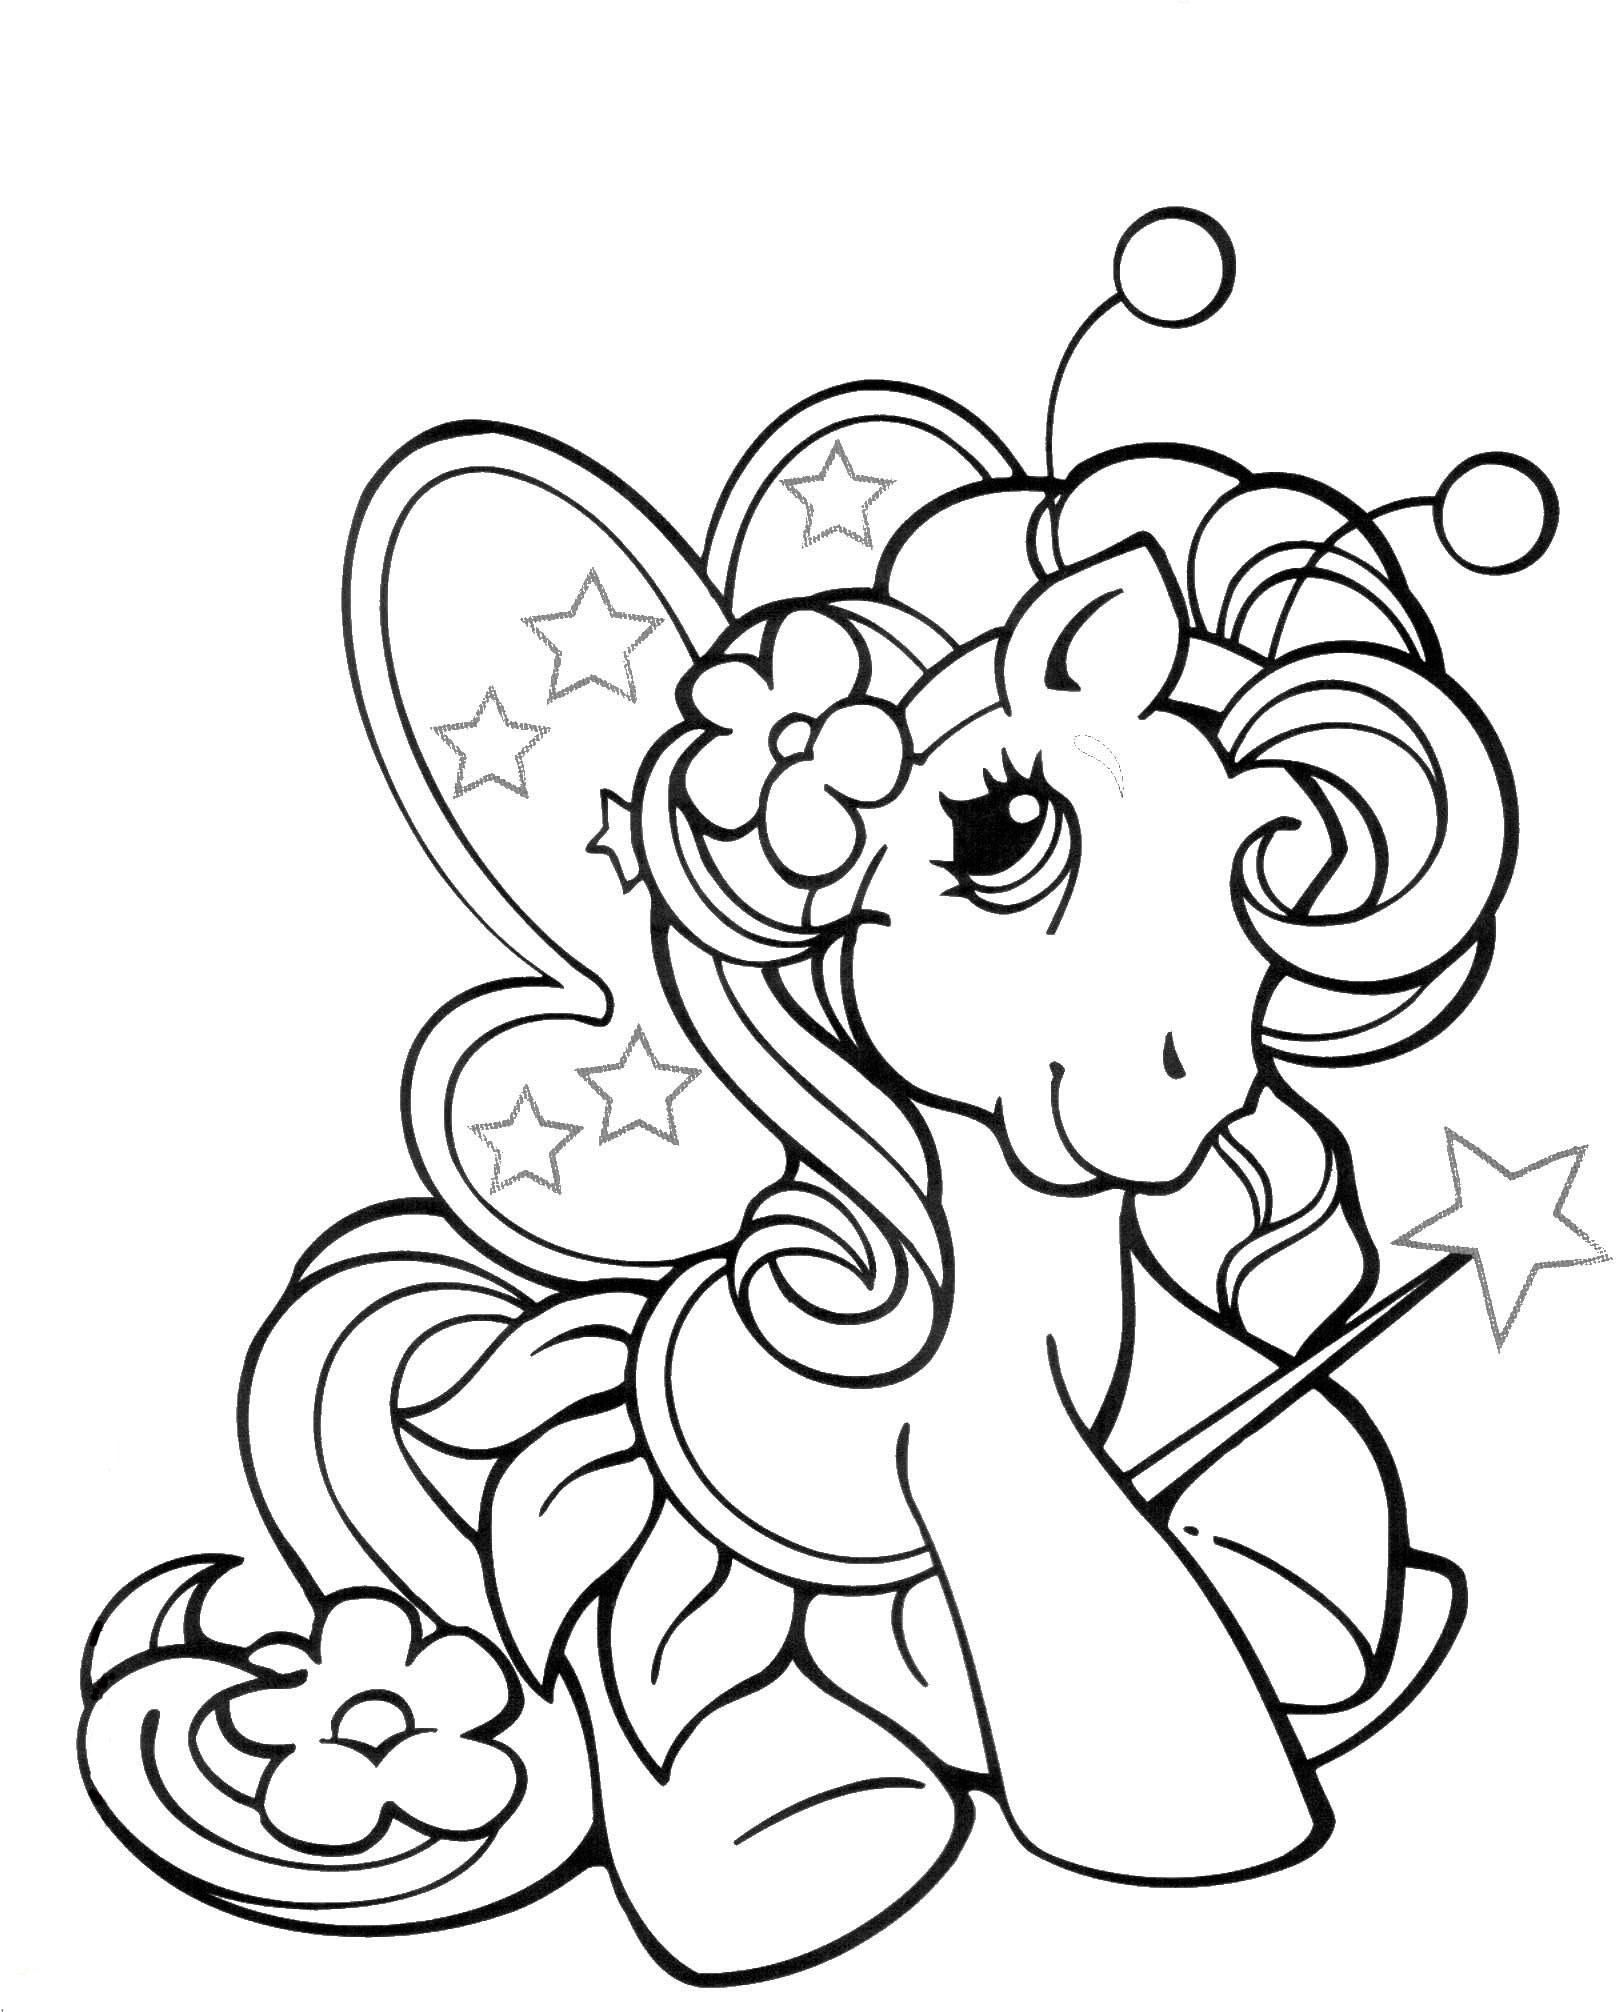 Coloriage poney coloriage poney imprimer dessin anti - Coloriage poney ...